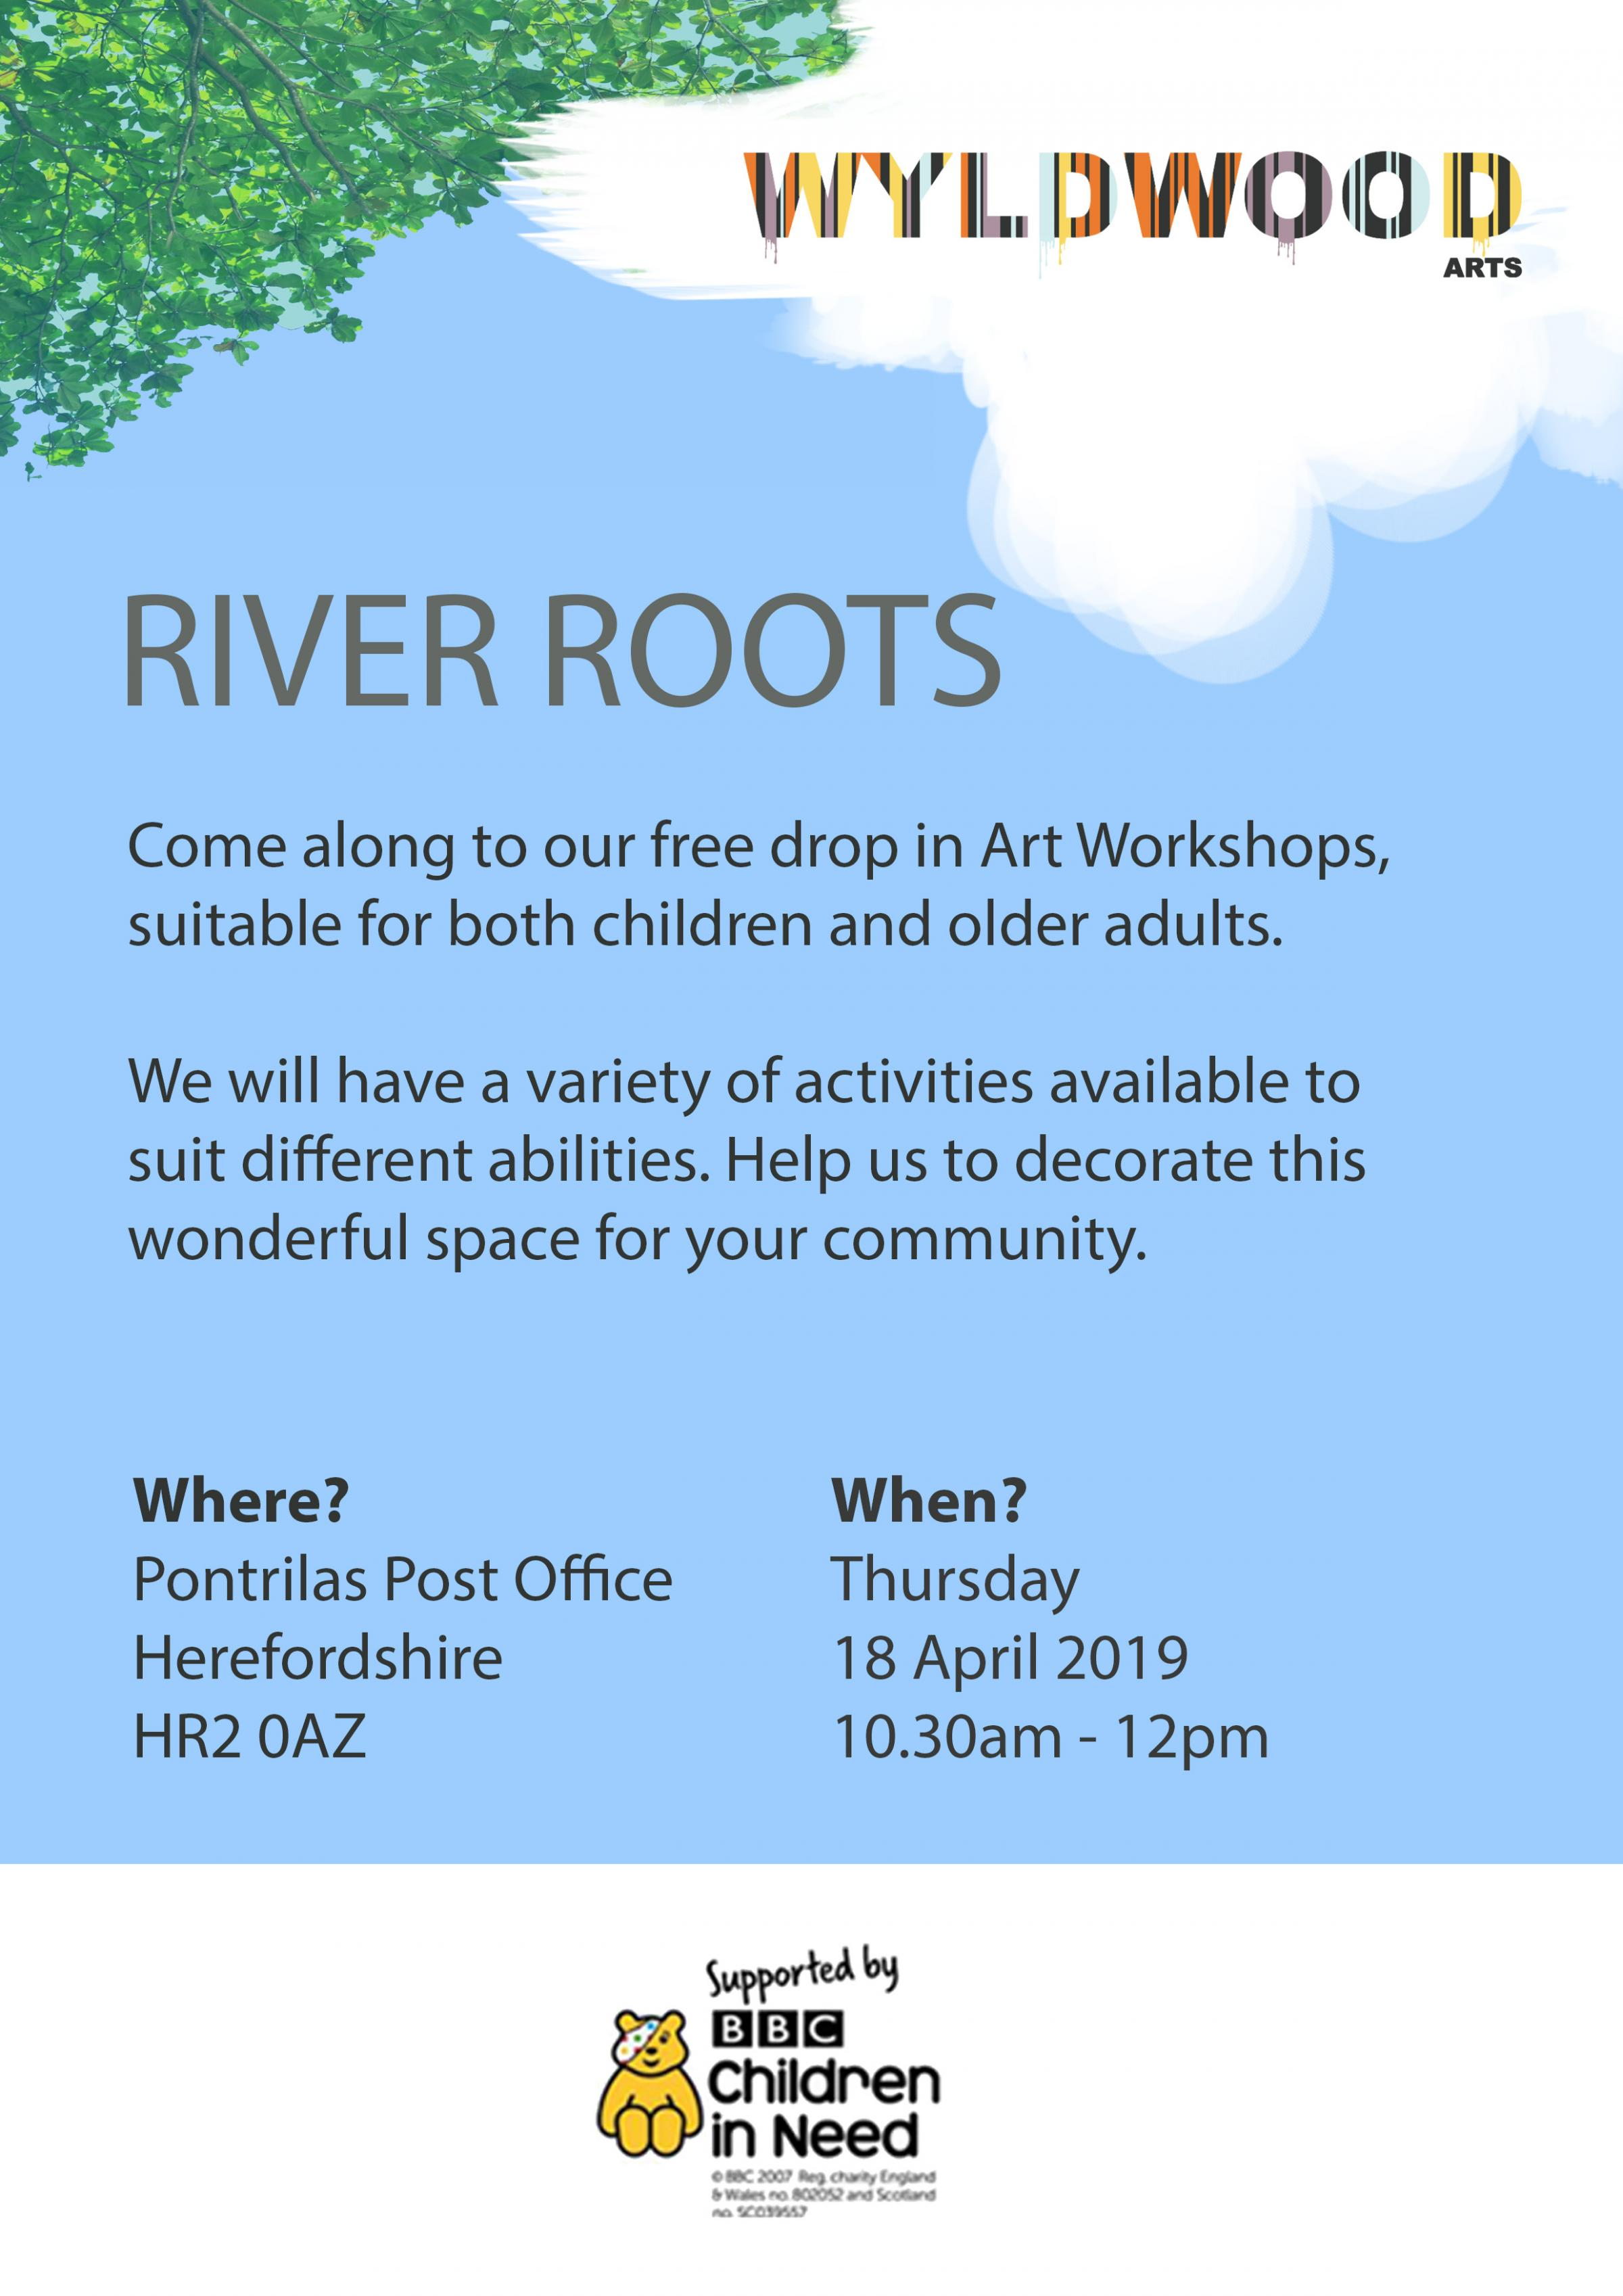 River Roots -free drop in workshops